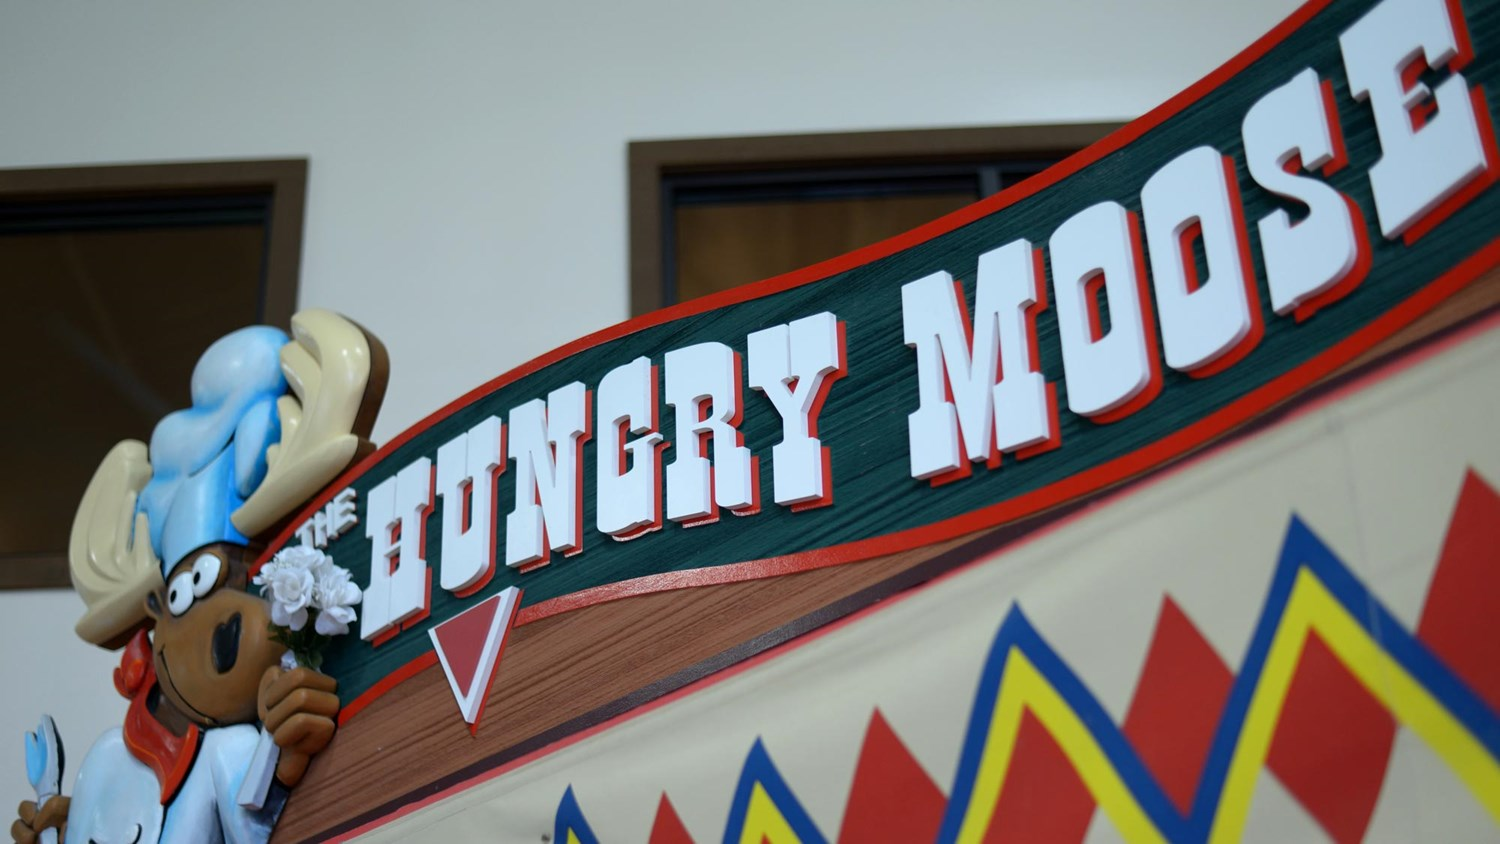 The Hungry Moose welcome sign